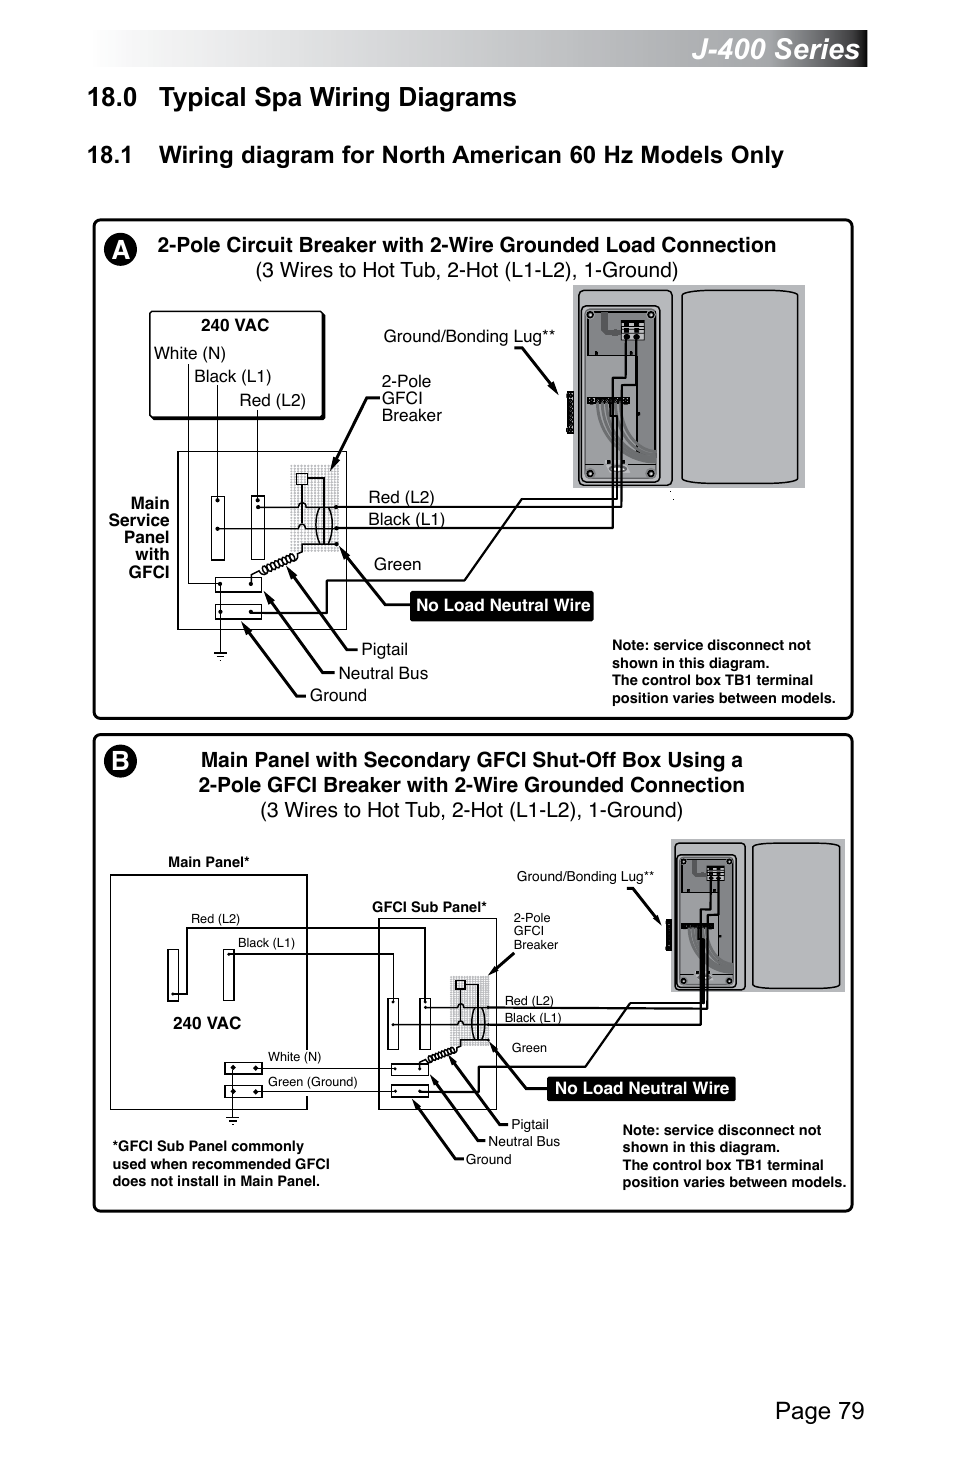 jacuzzi j 470 page85 0 typical spa wiring diagrams, j 400 series, page 79 jacuzzi j hot tub wiring diagram at aneh.co